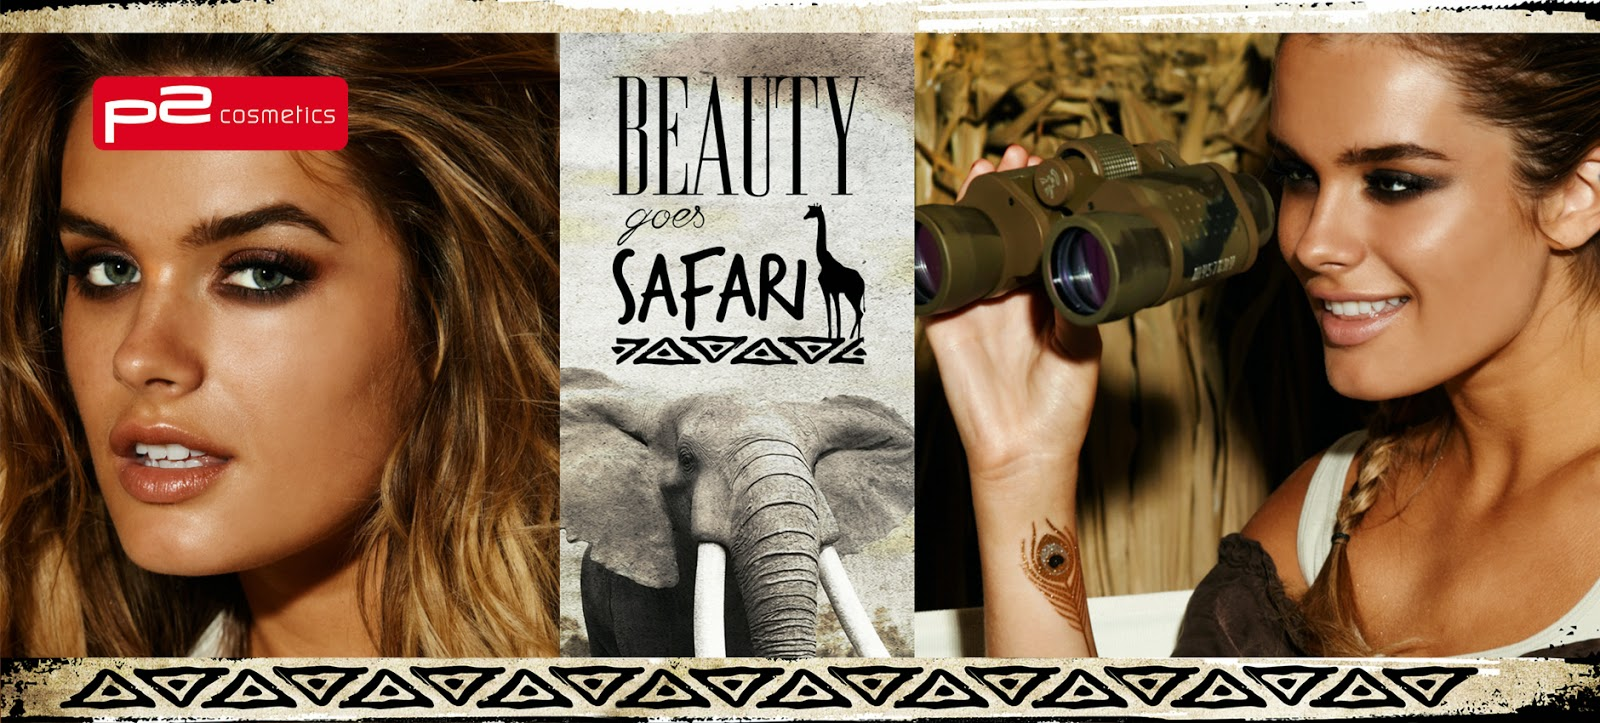 p2 Beauty goes Safari